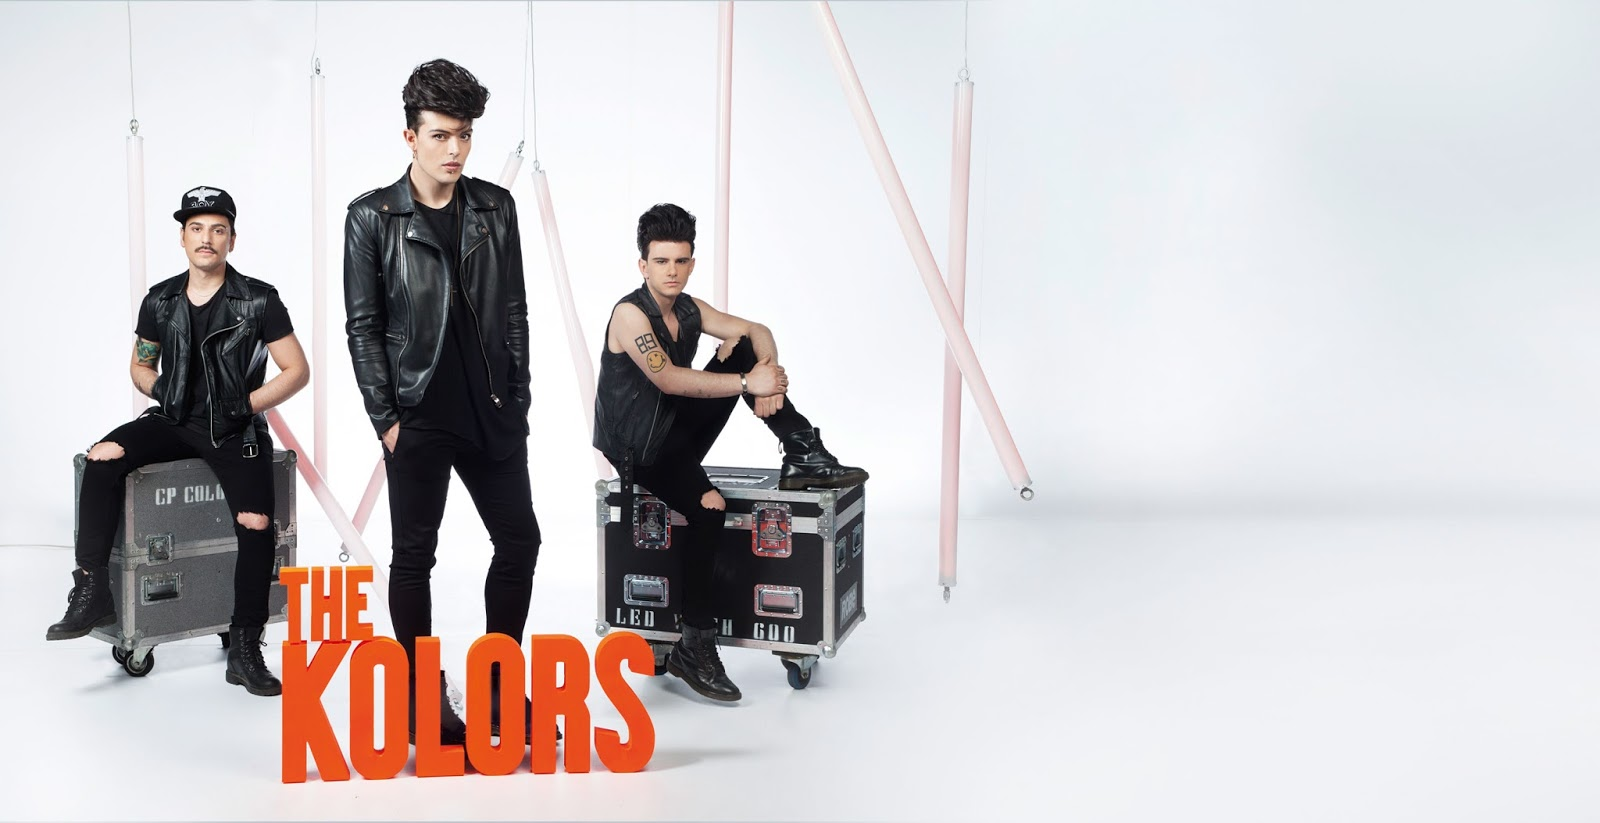 Everytime - The Kolors: testo, video e traduzione